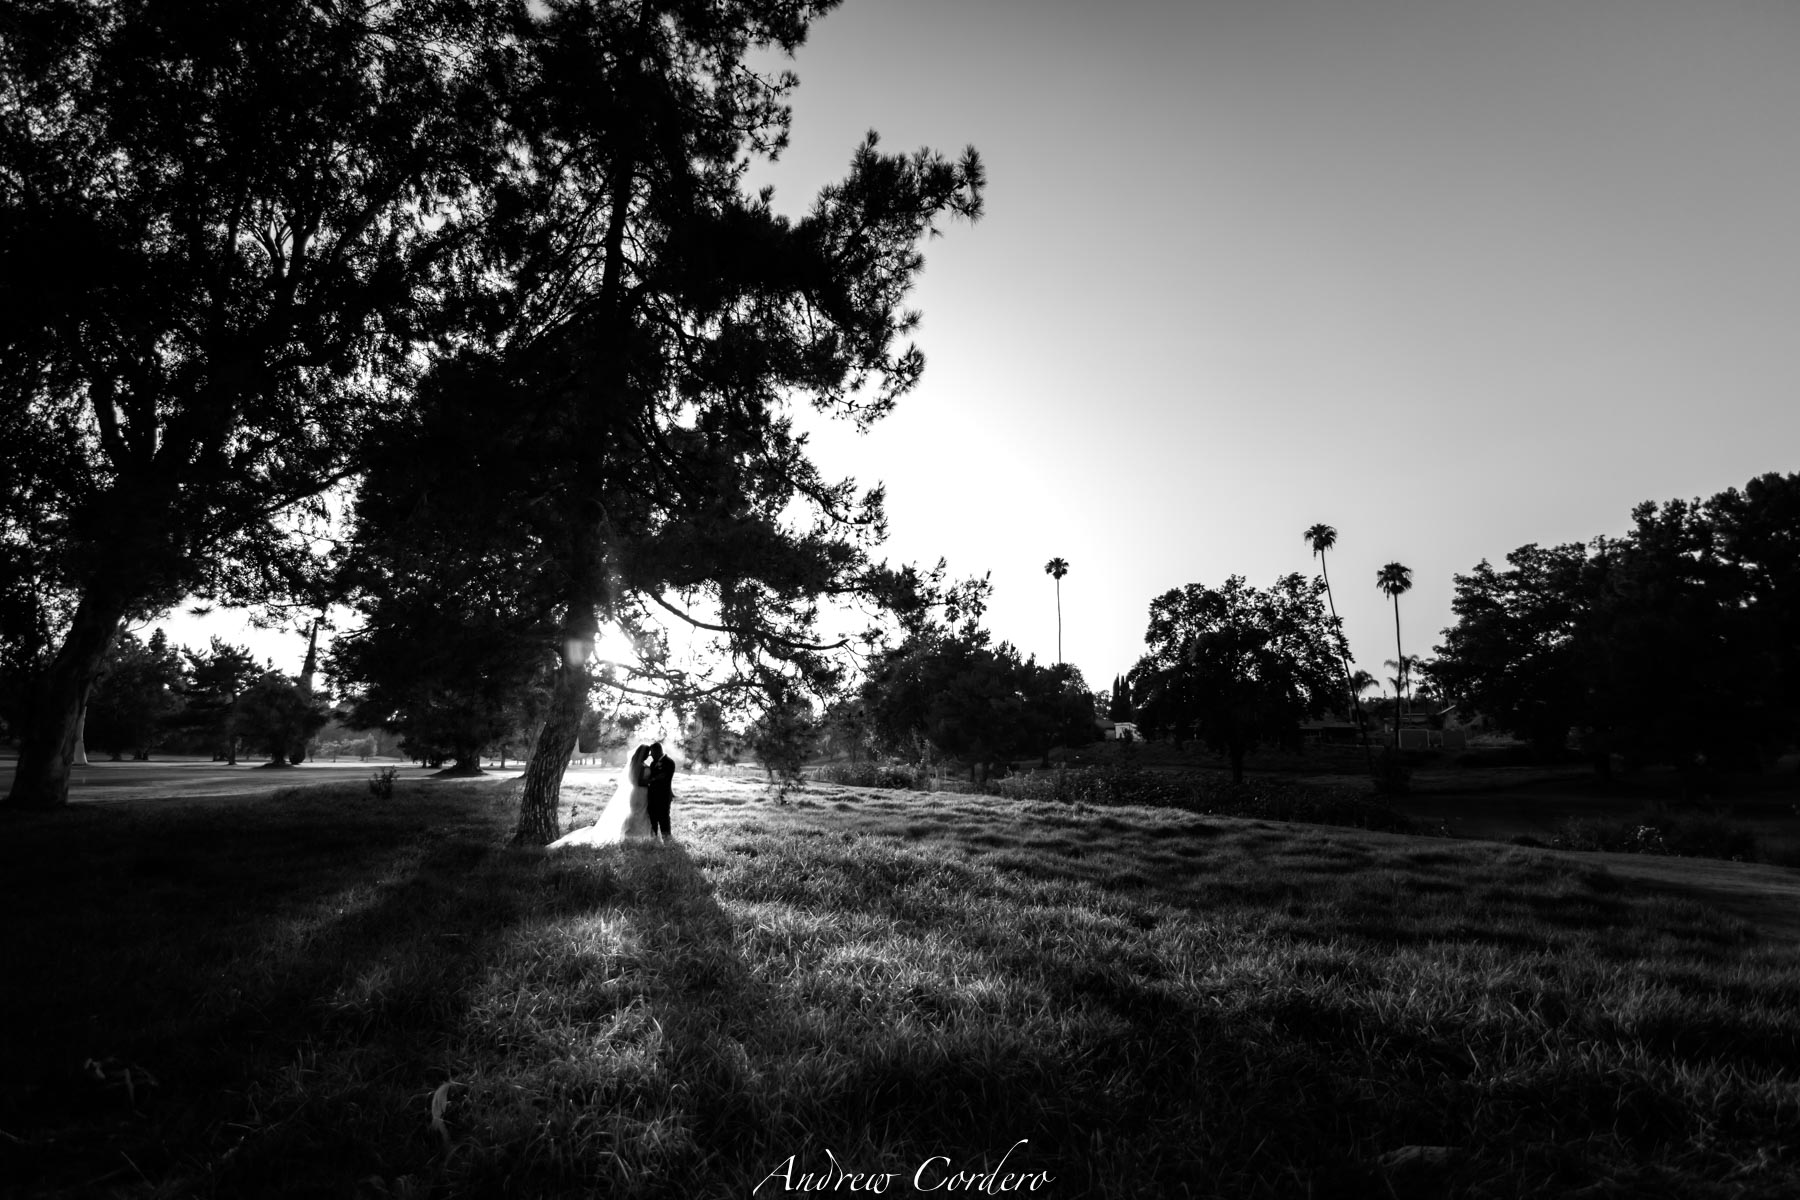 canyon-crest-country-club-riverside-wedding-jose-and-espie-1550.JPG